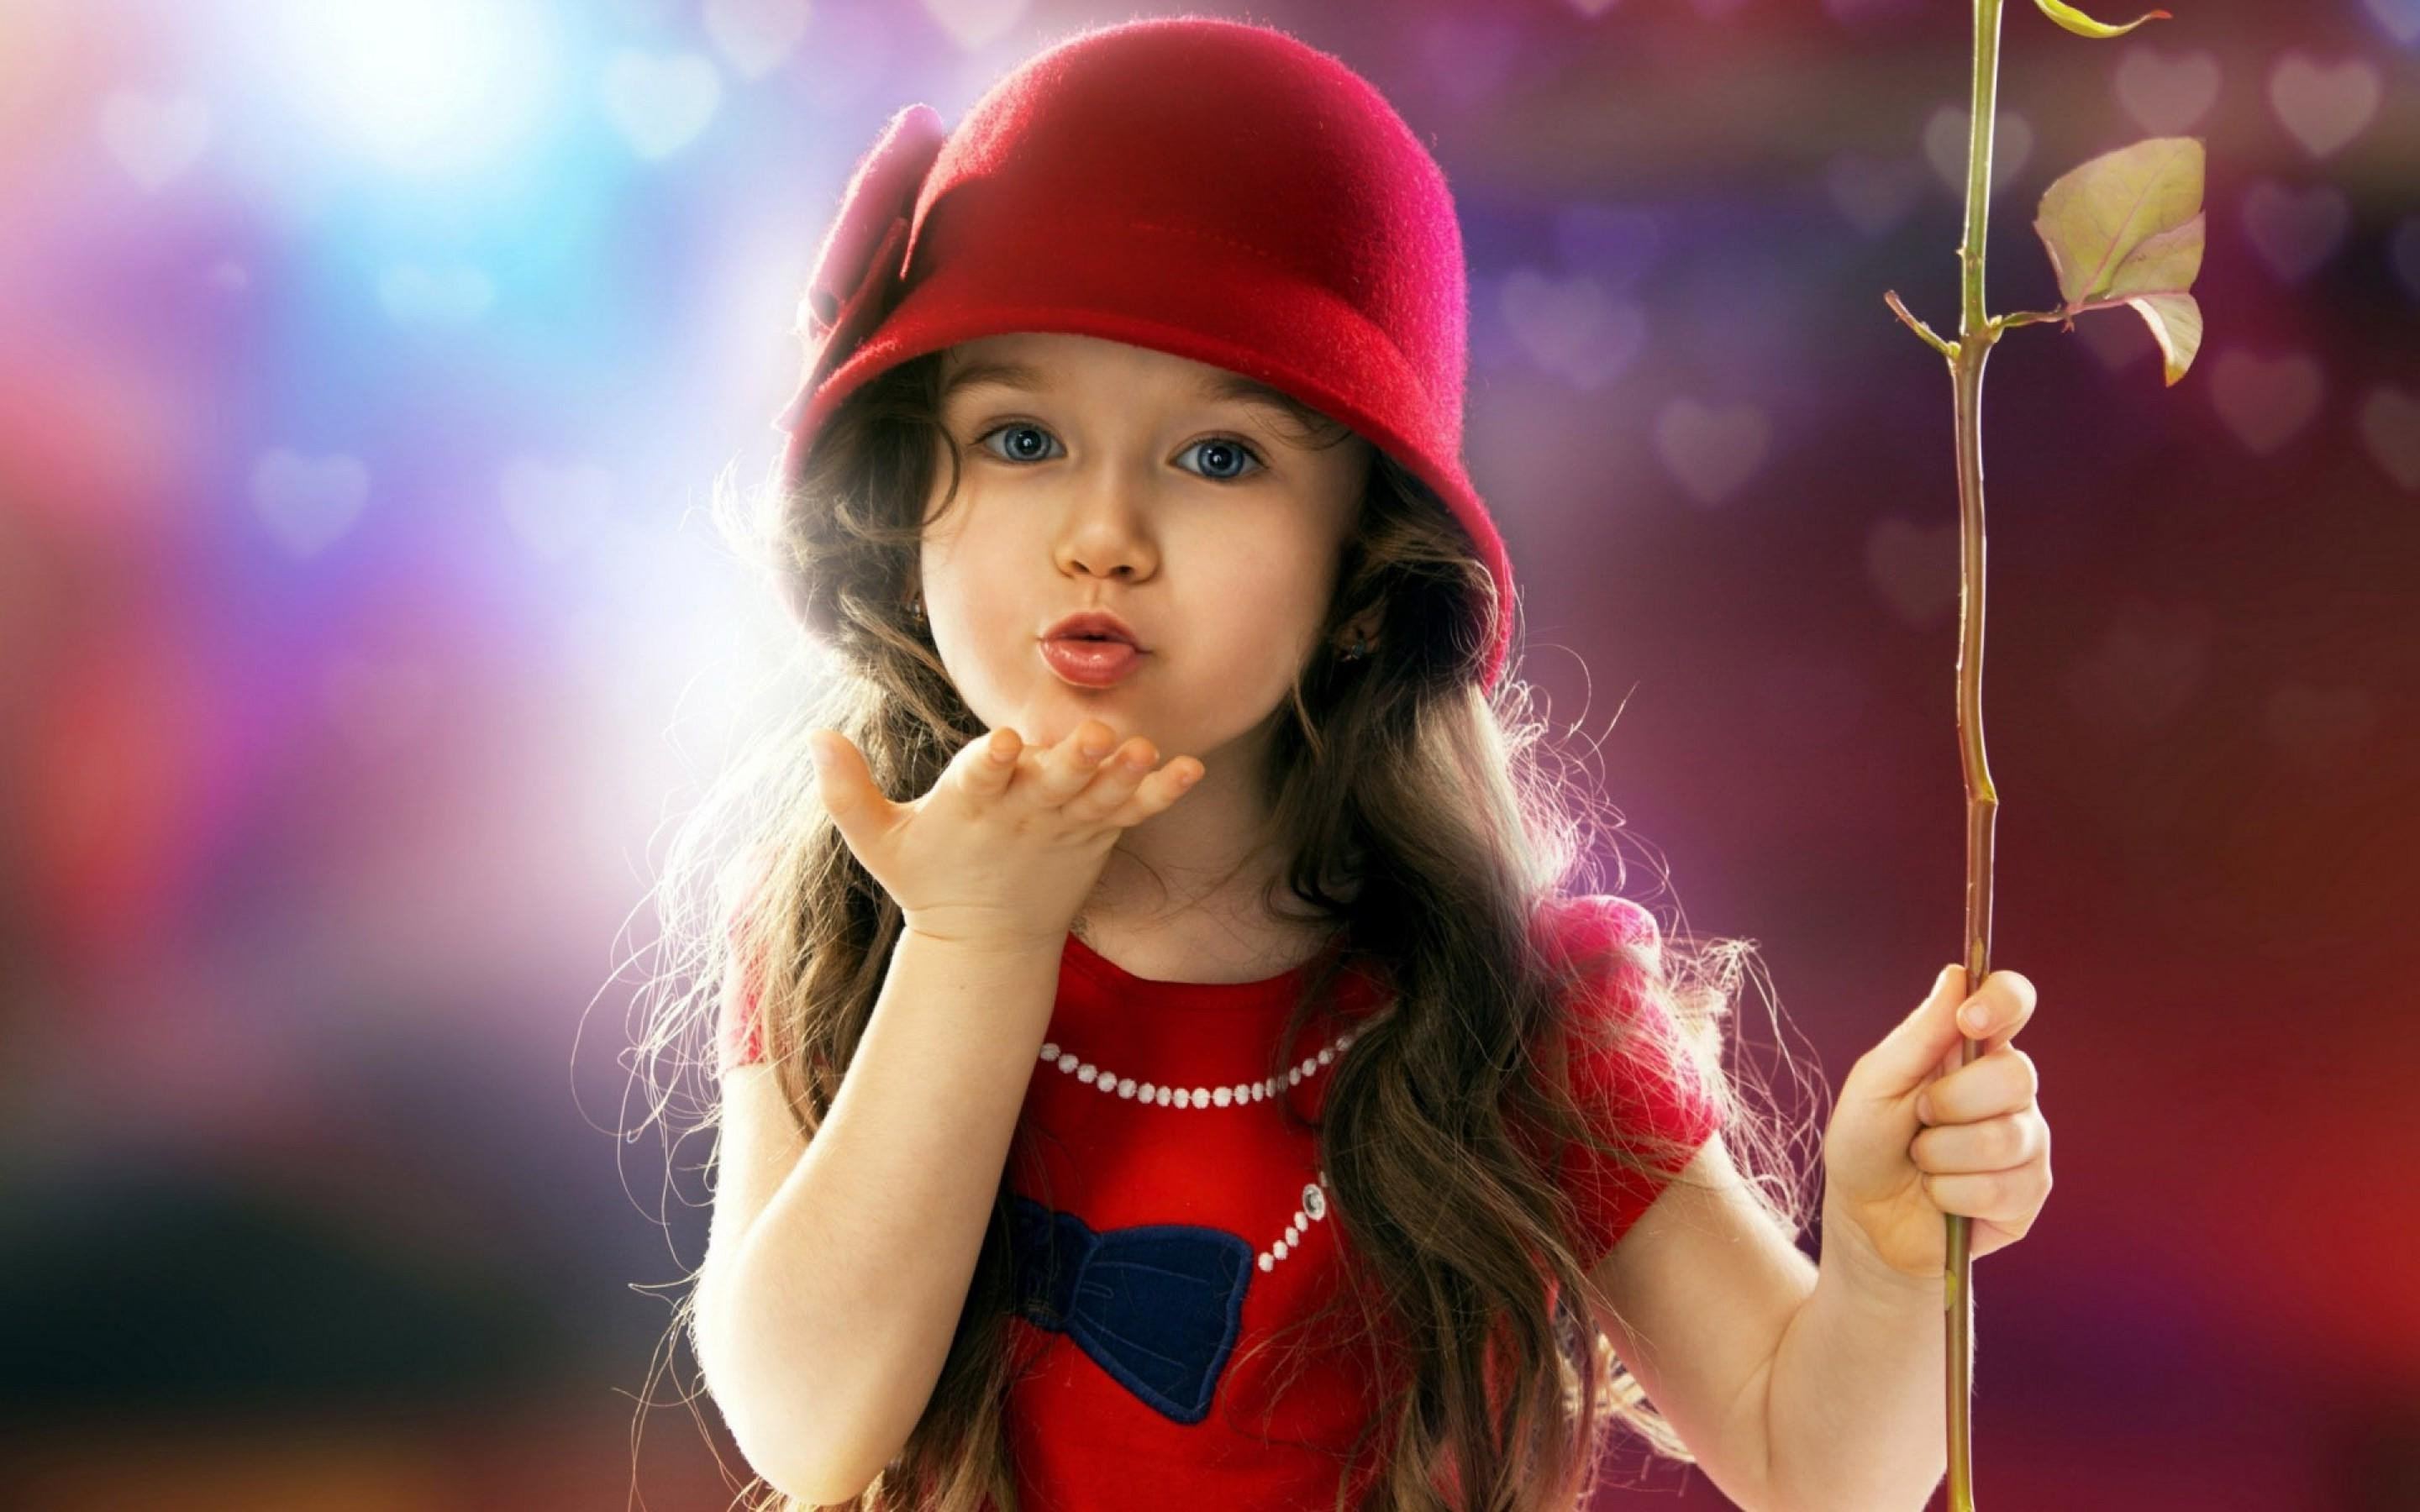 Small child Love Wallpaper : Little Girl Blowing a Kiss, HD cute, 4k Wallpapers, Images, Backgrounds, Photos and Pictures